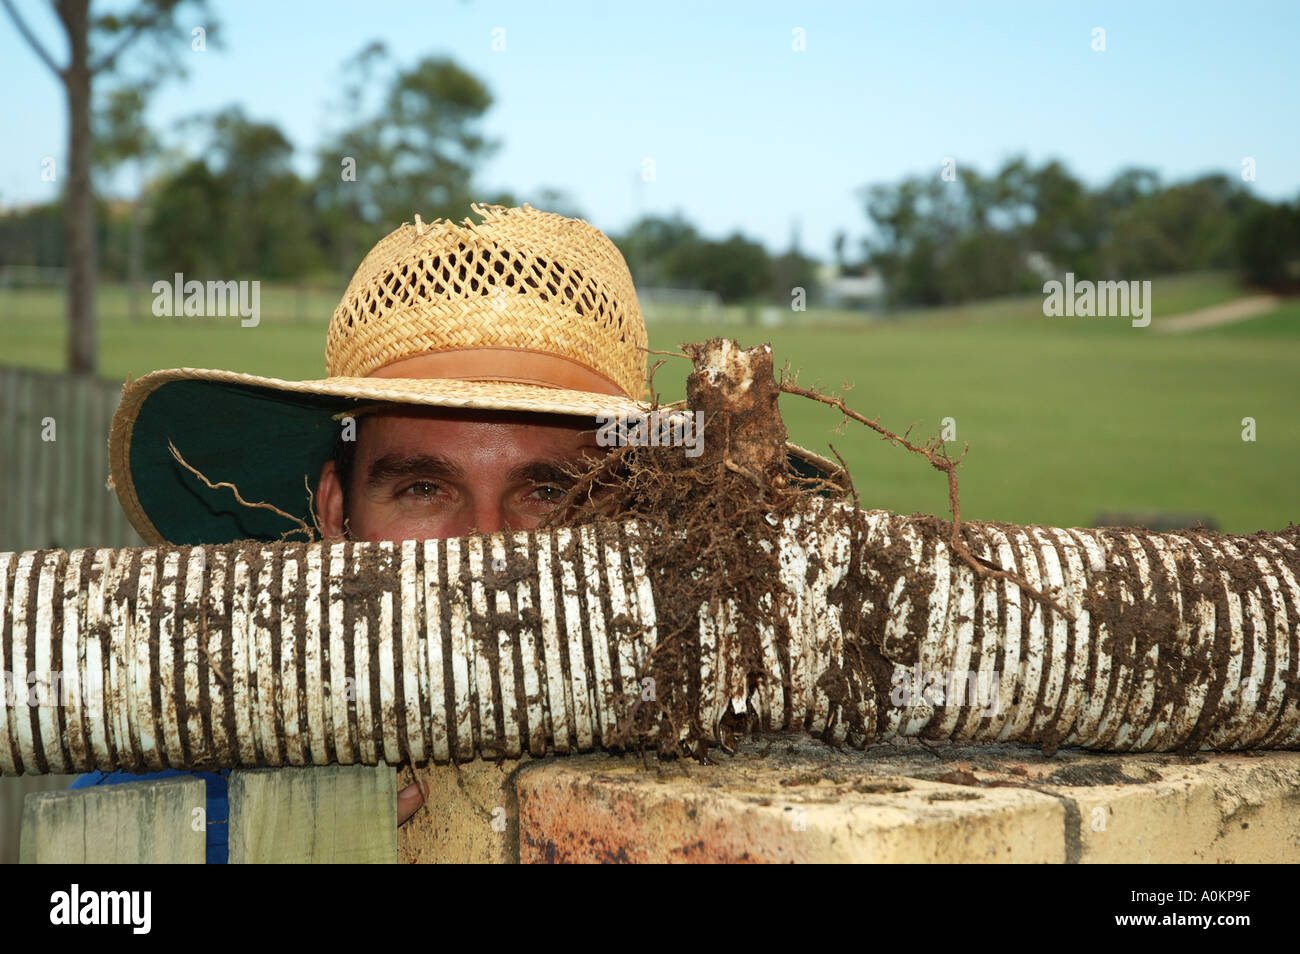 Plumber Straw Hat Clogged Stormwater Stockfotos & Plumber Straw Hat ...